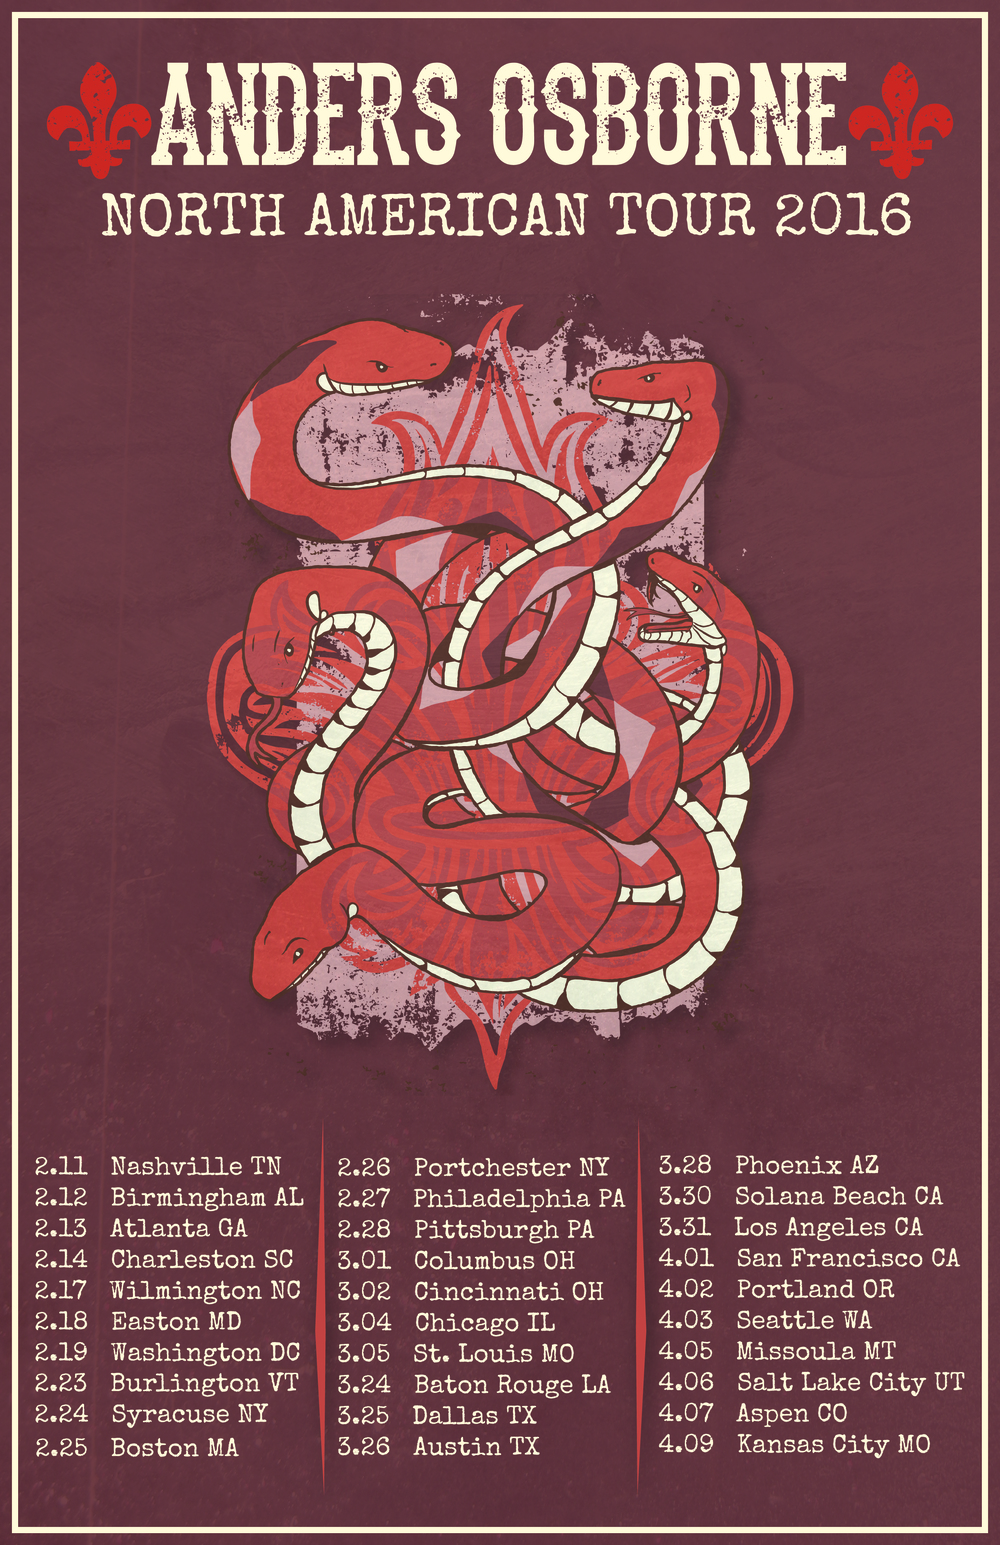 "Anders Osborne North American Tour 2016!   Anders and company will be hitting the road starting this February and trekking across the US until the middle of April. Special fan club VIP tickets are available now and include a soundcheck meet and greet, a signed silk screen limited edition poster, and an exclusive tour laminate. See below for links and use the password ""ANDERS"".   GET FAN CLUB TIX HERE   See you on the road!  -TeamAO"